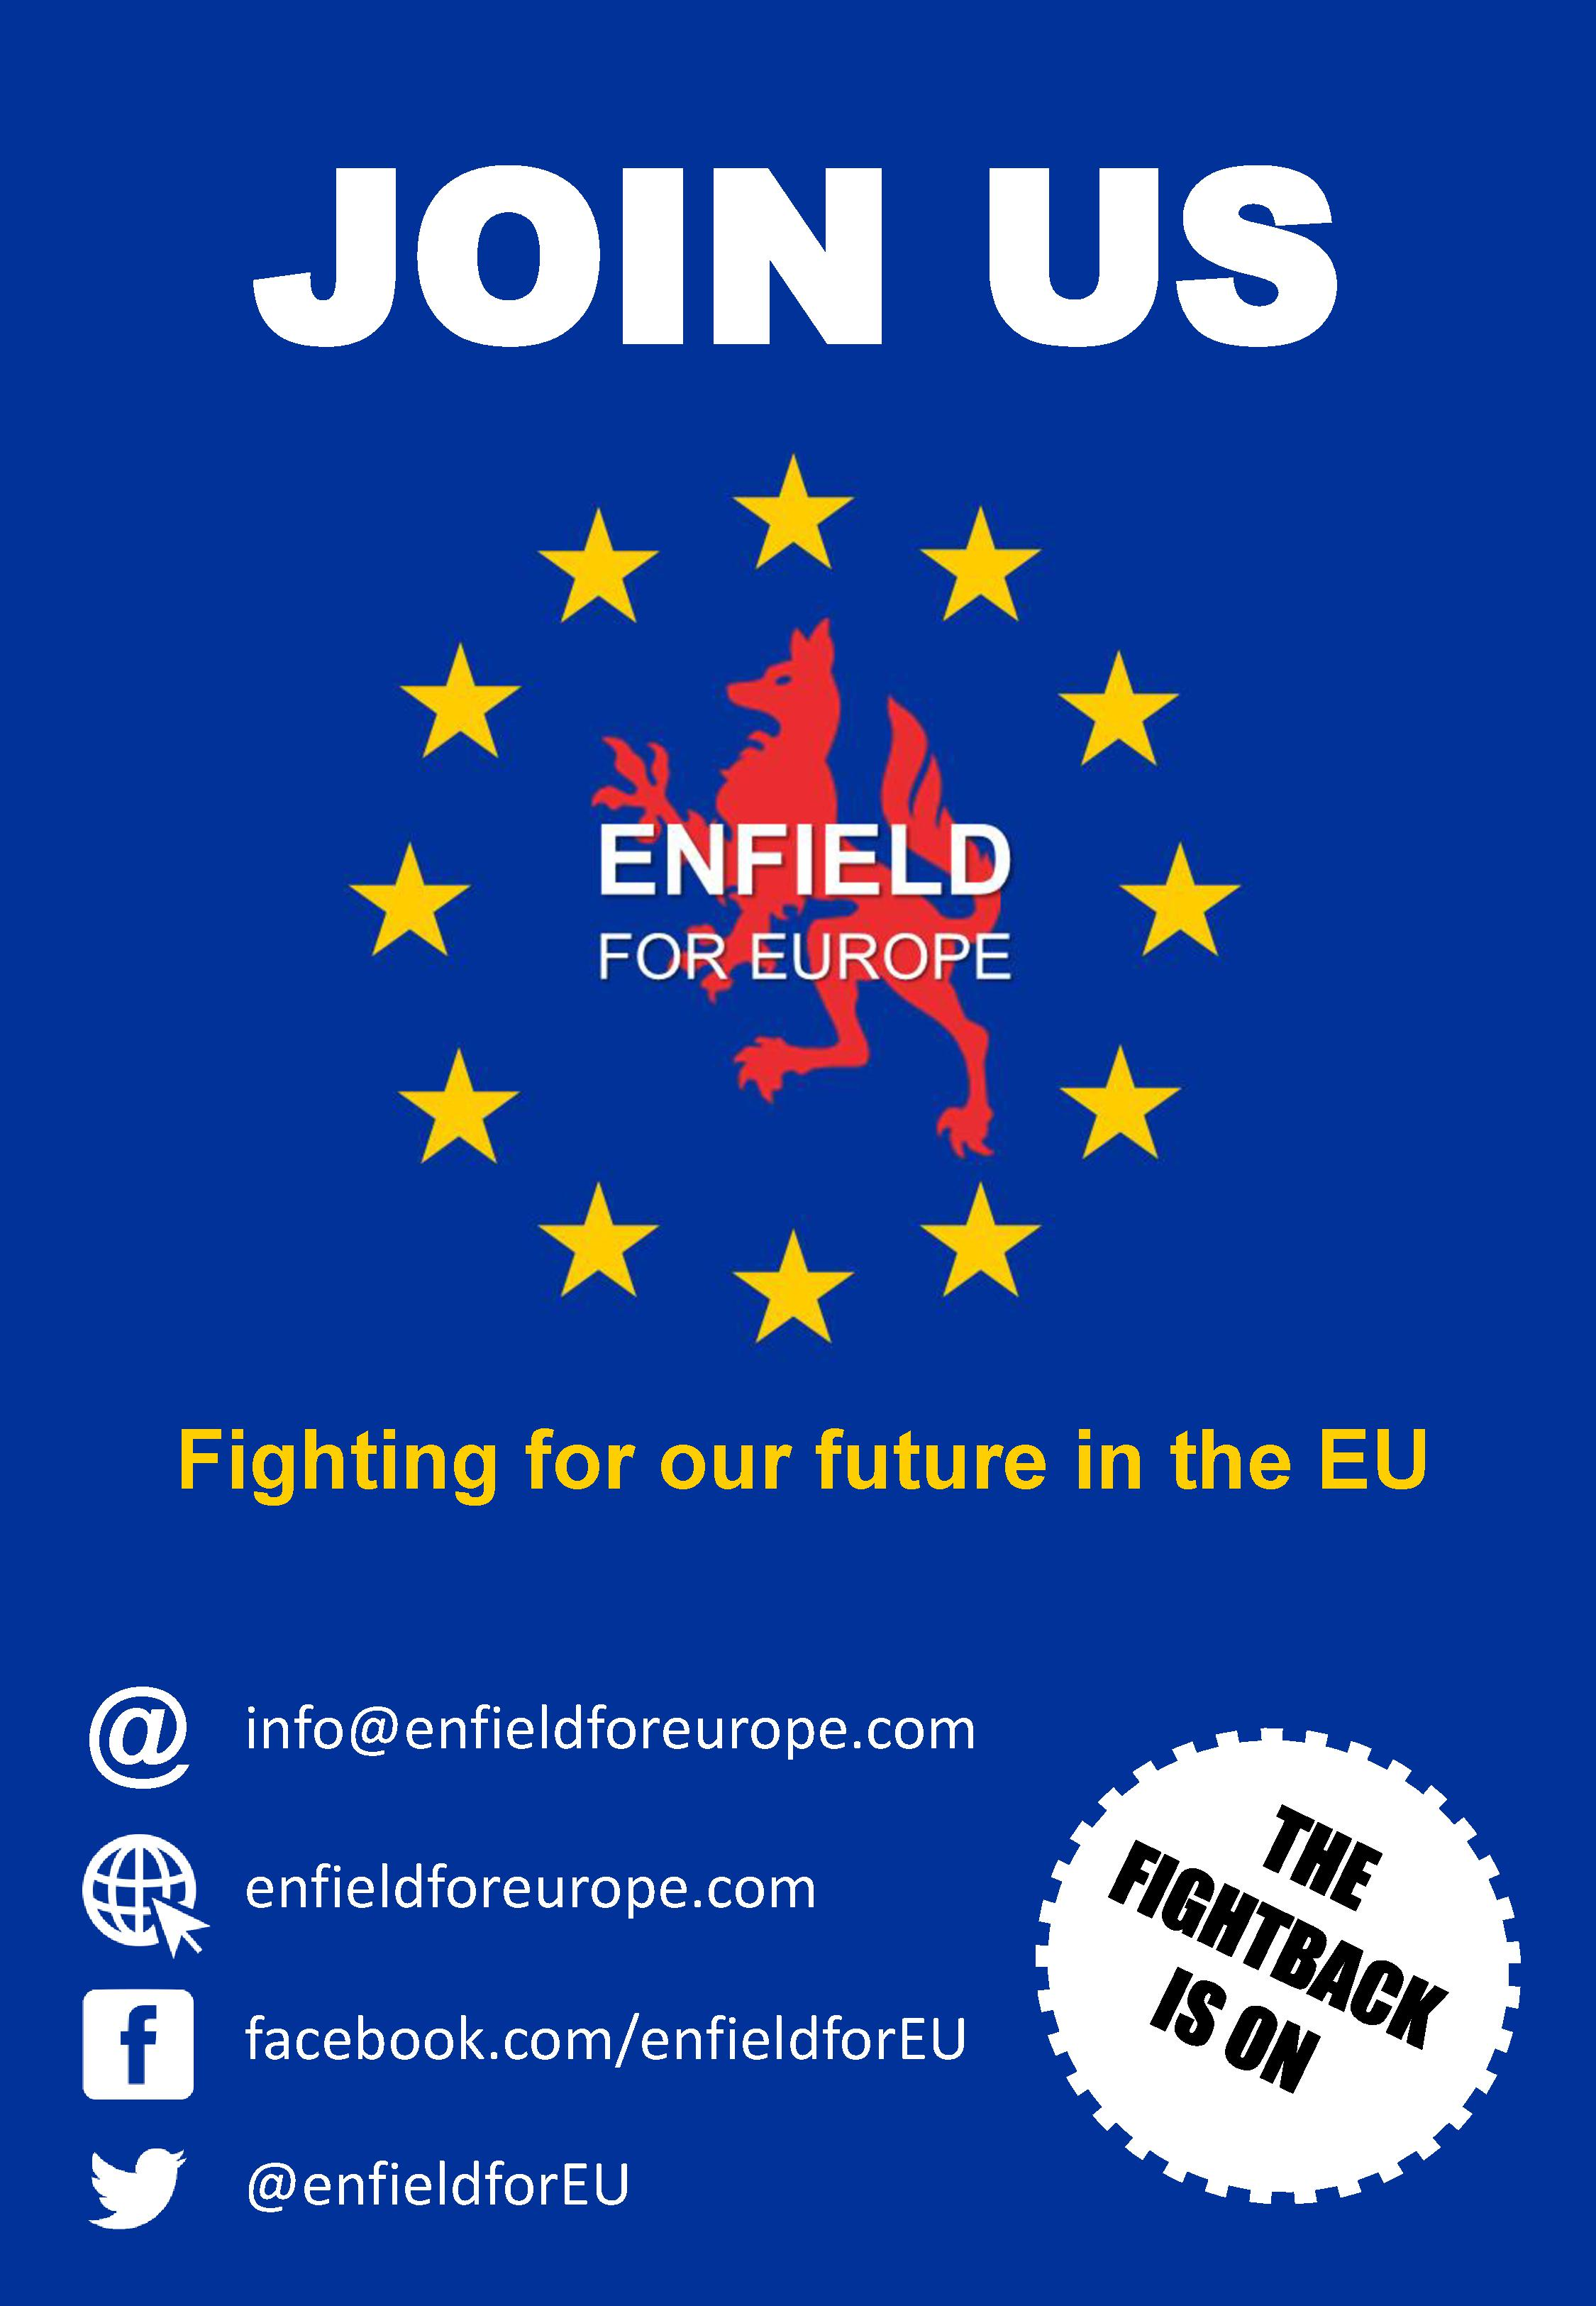 Enfield for Europe